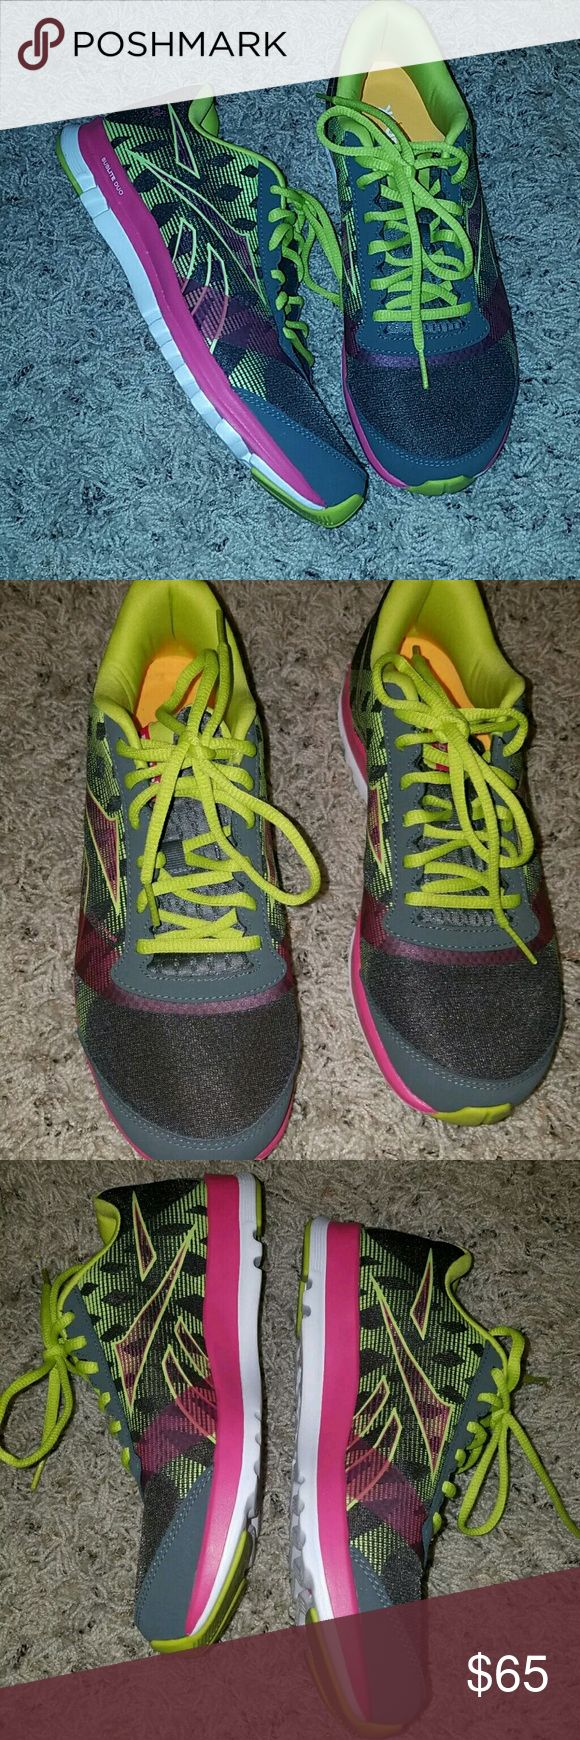 Reebok Sublite Duo Neon Running Shoes Reebok Sublite Duo Neon Running Shoes No Flaws Size 10  Excellent used condition. No flaws.    LB Reebok Shoes Sneakers